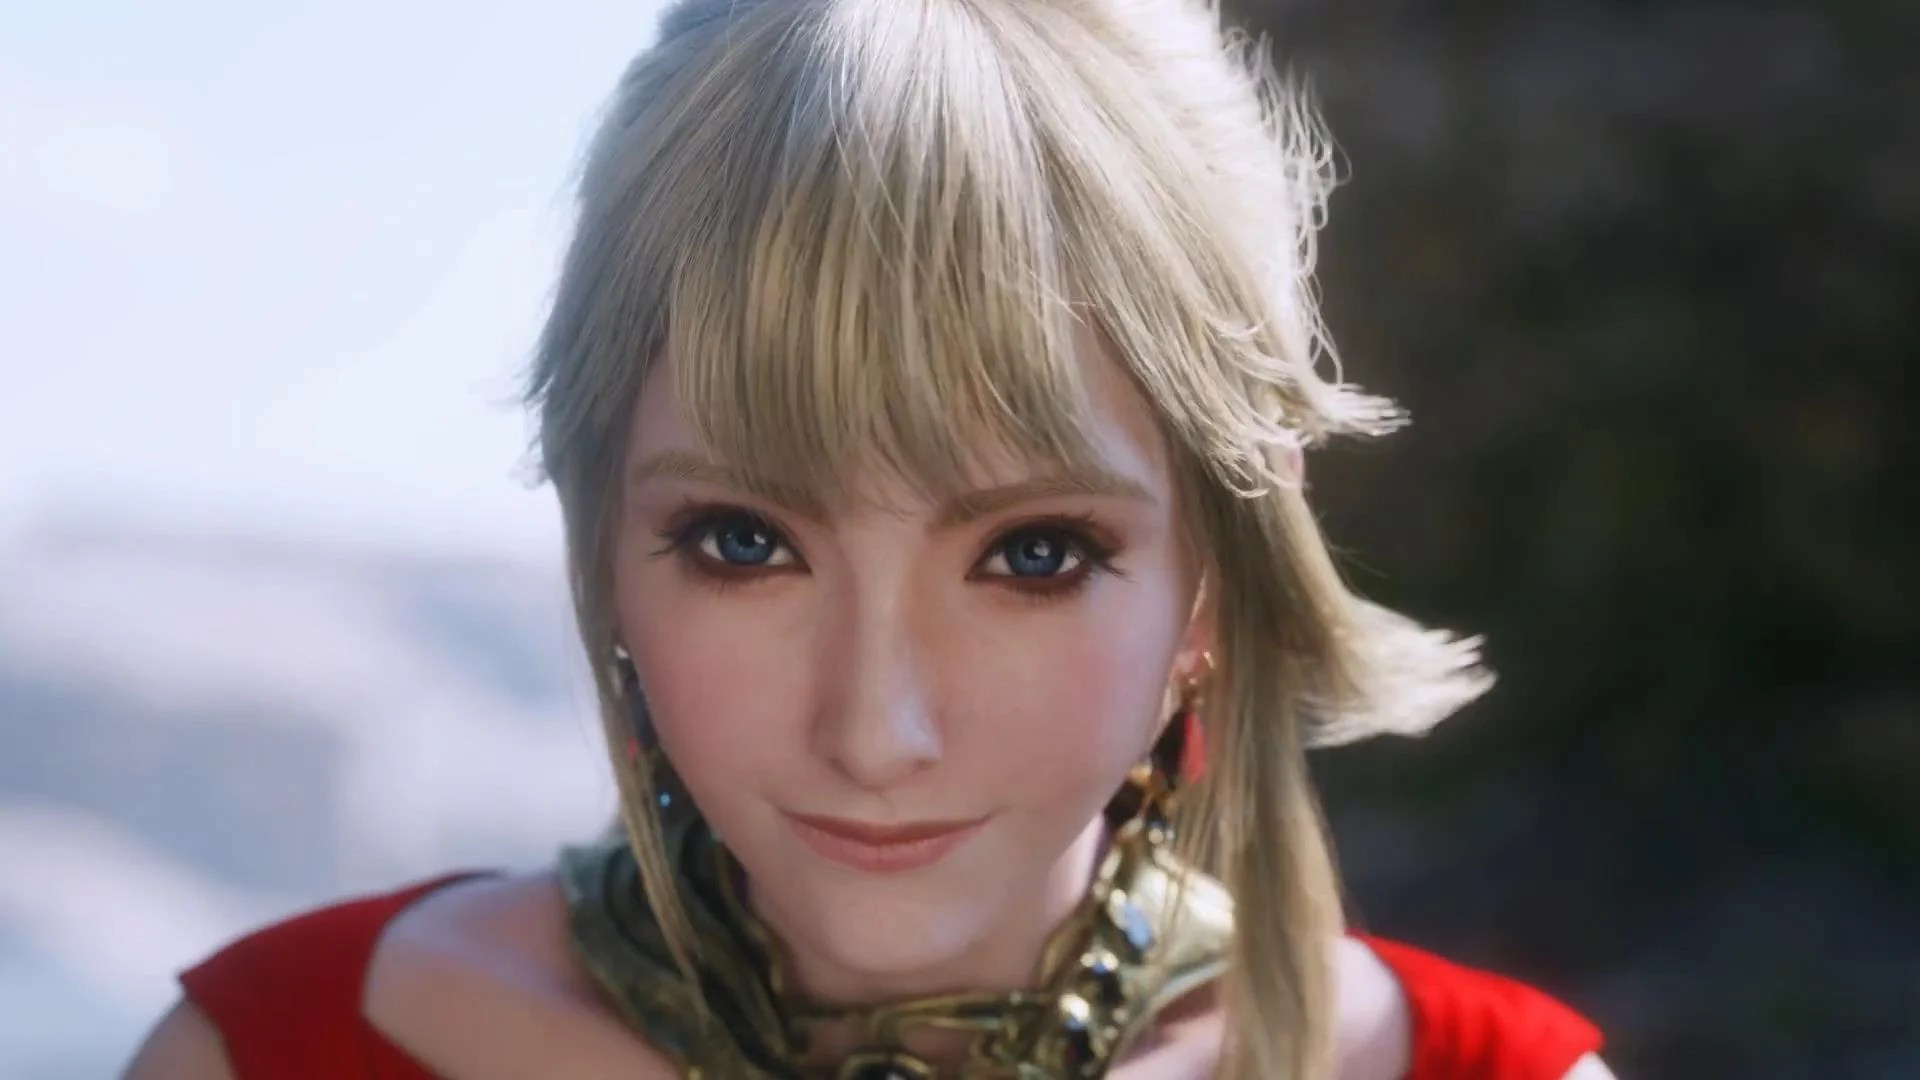 Final Fantasy XIVs New Expansion Stormblood Shines In Spectacular Trailer By Visual Works